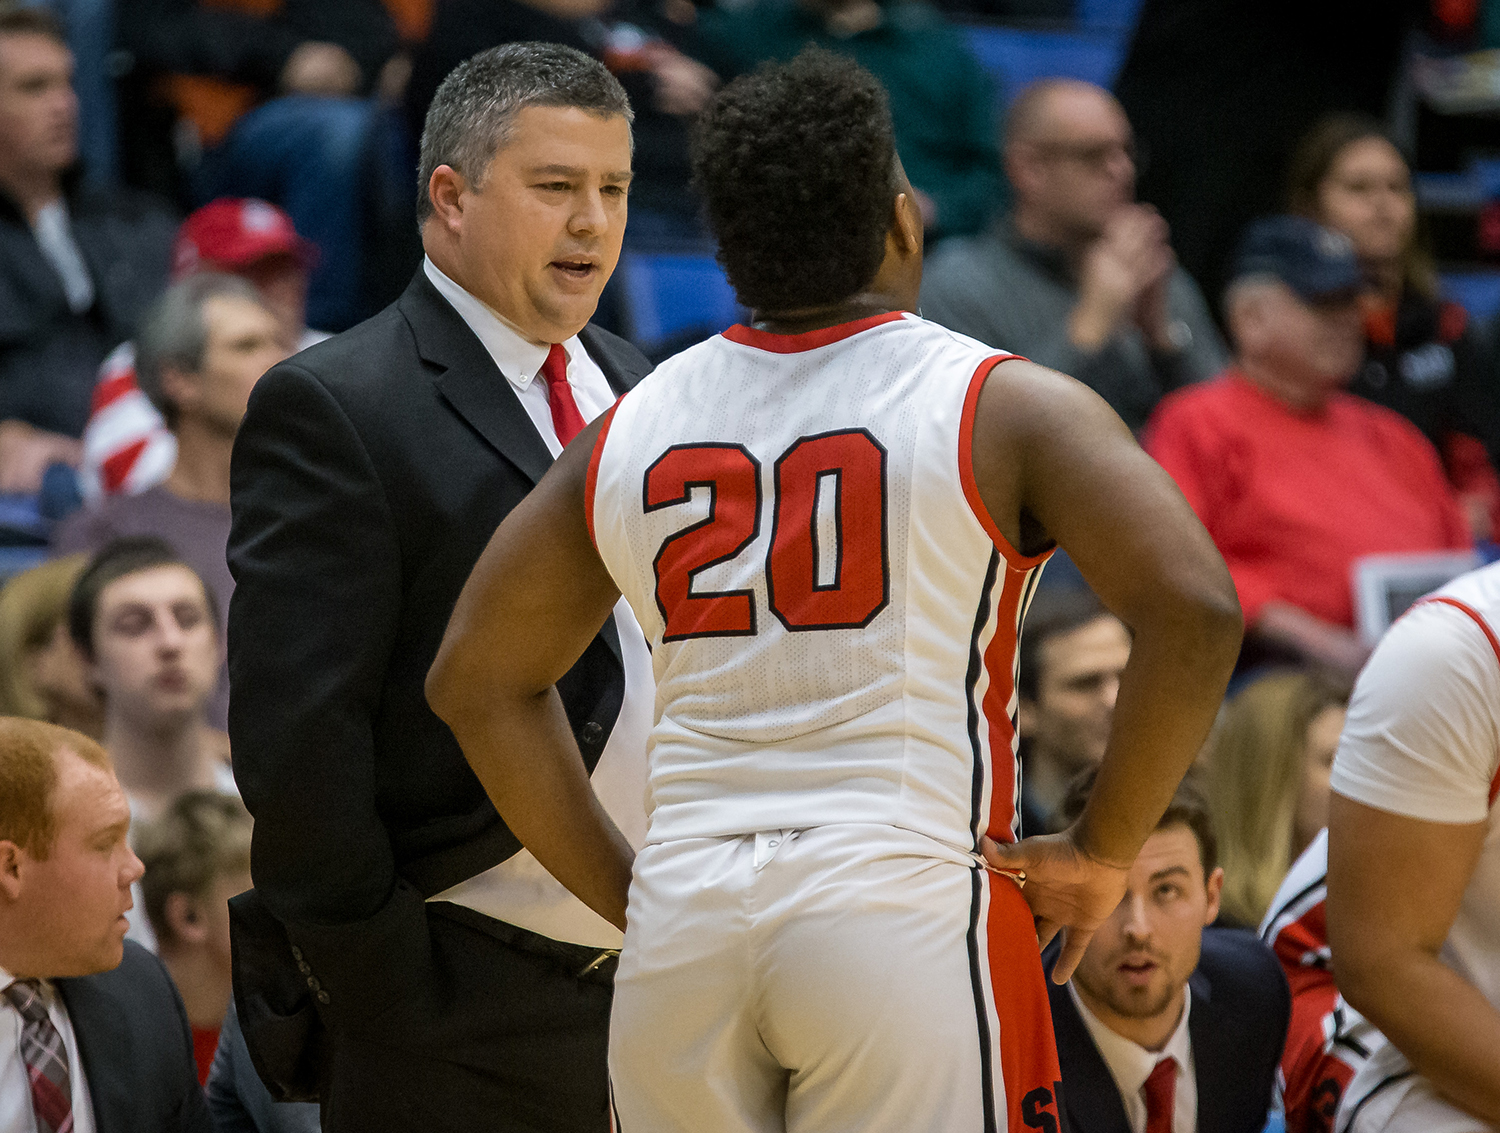 Springfield boys basketball head coach Joby Crum talks with Springfield's Caleb Small (20) as the Senators take on Sacred Heart-Griffin in the second quarter on opening night of the Boys City Tournament at the Bank of Springfield Center, Wednesday, Jan. 16, 2019, in Springfield, Ill. [Justin L. Fowler/The State Journal-Register]